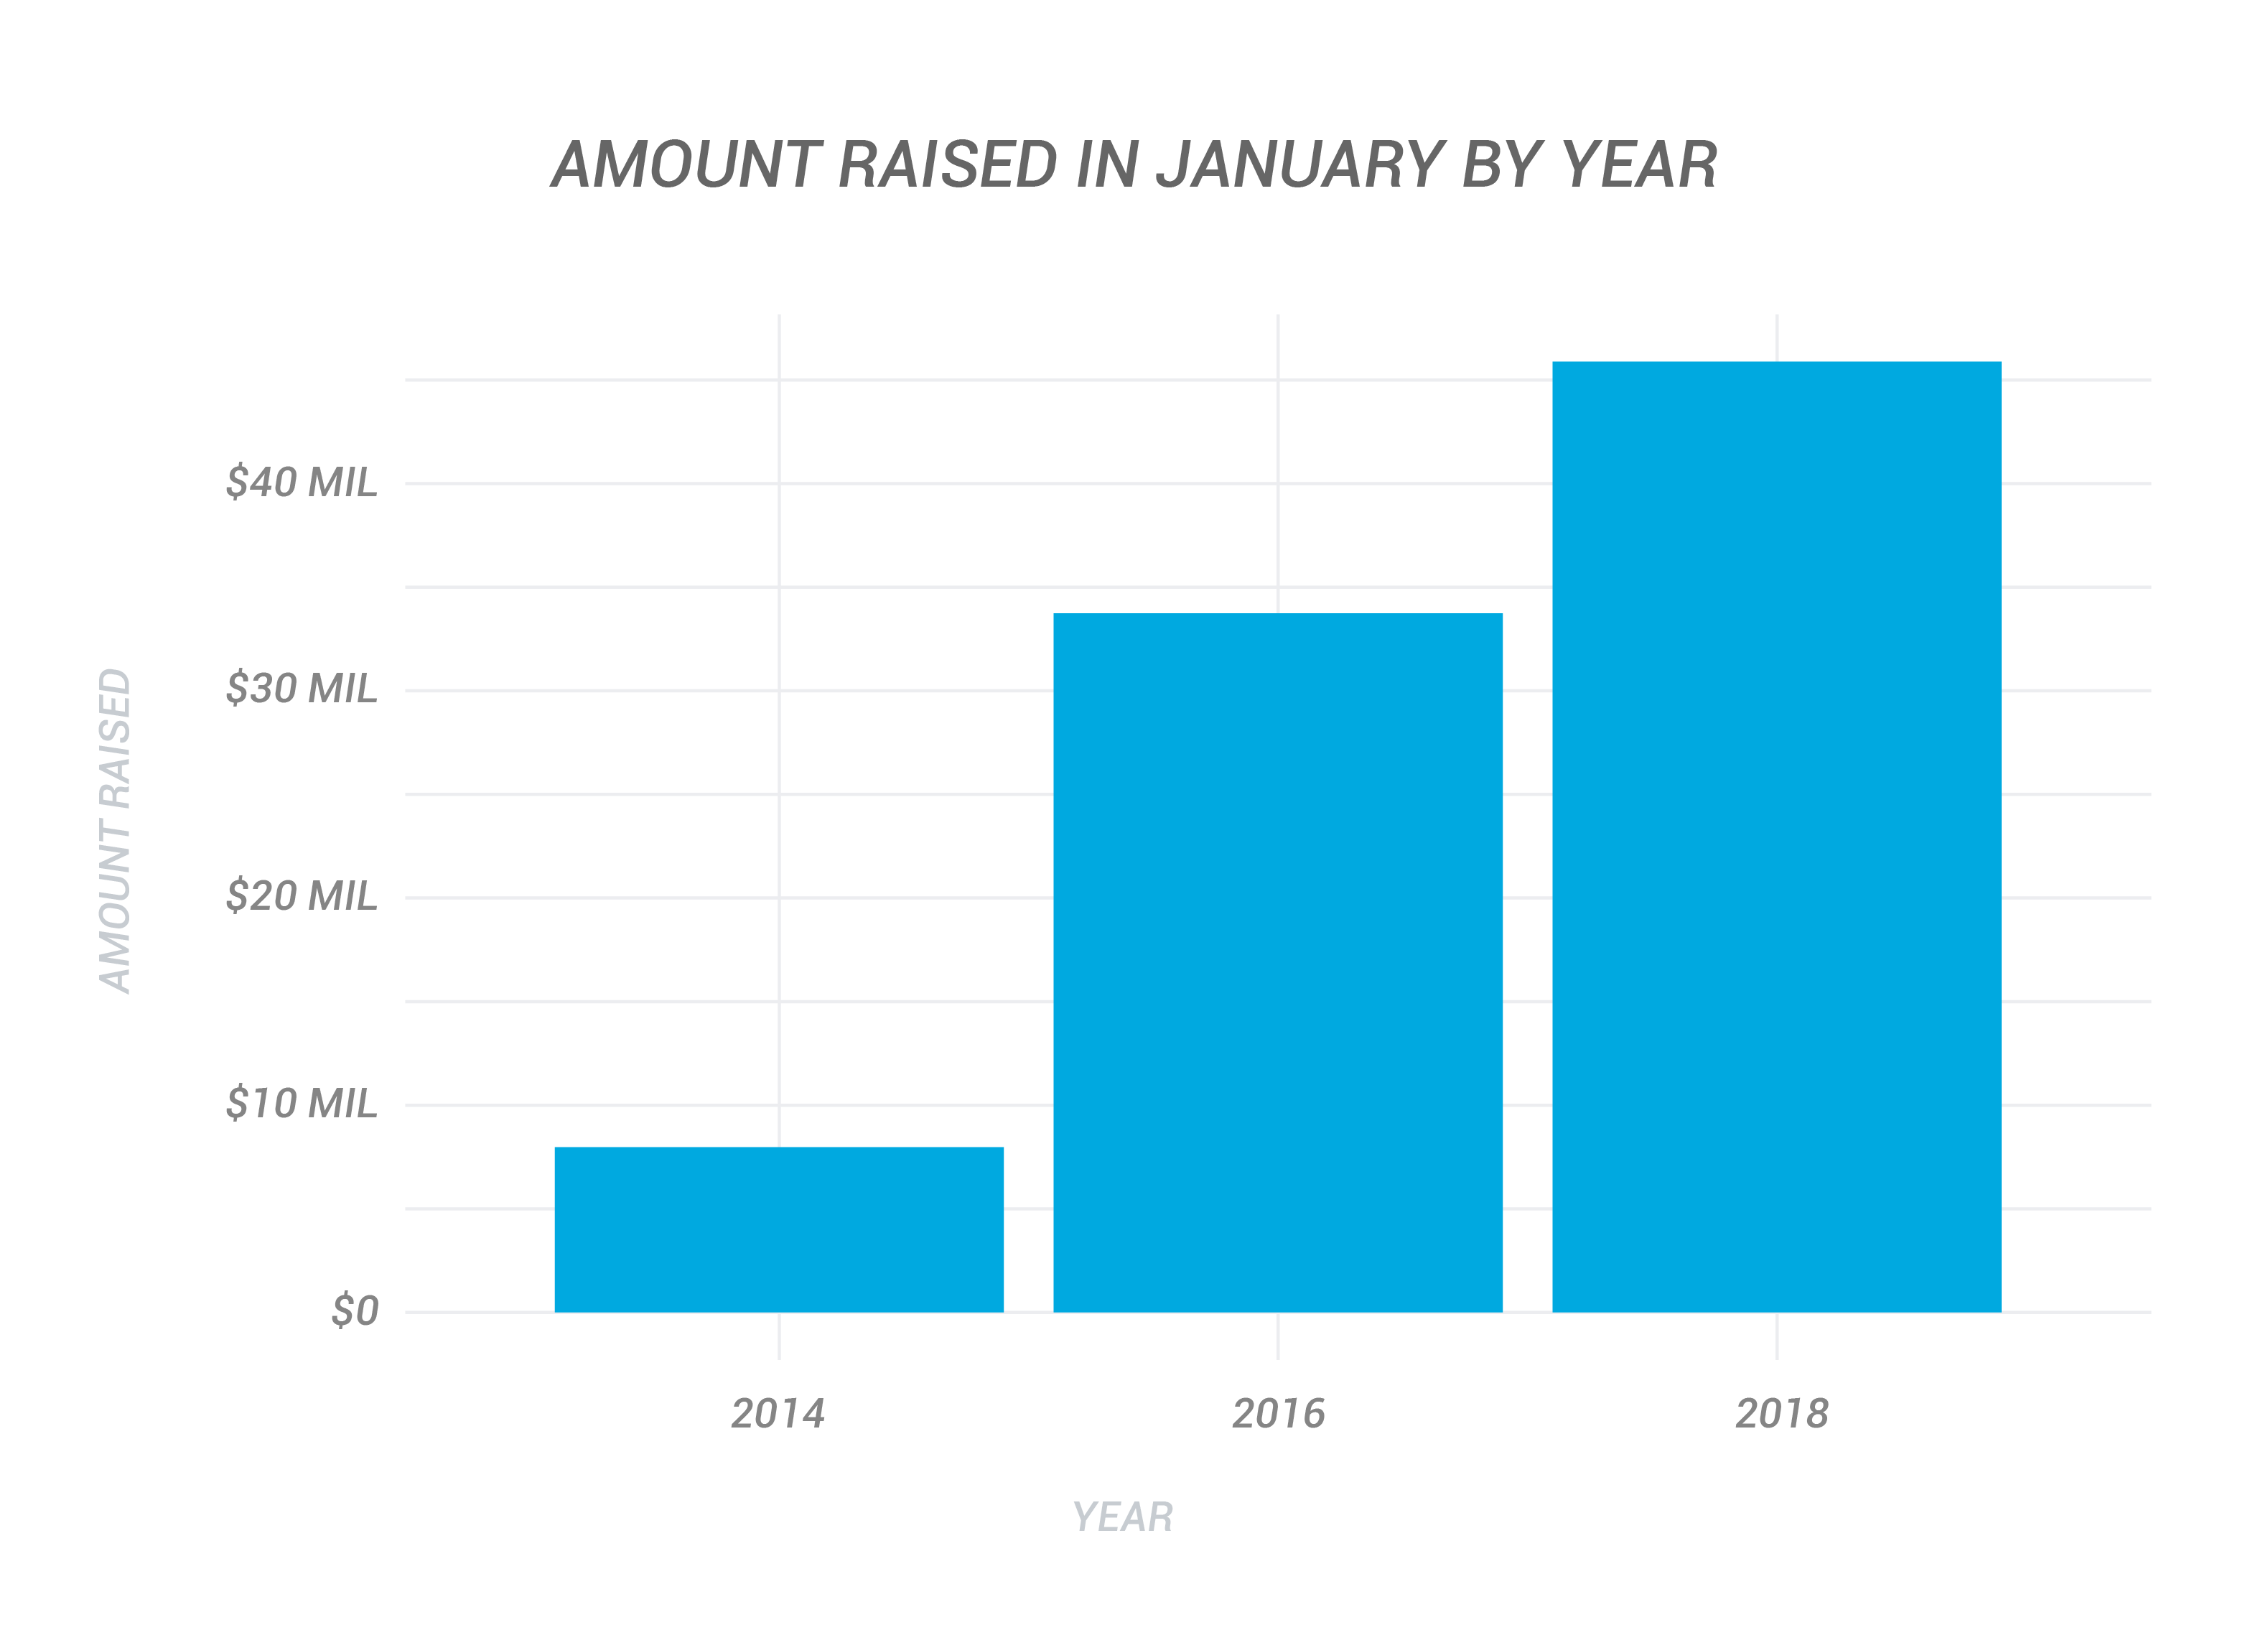 Amount Raised in January by Year